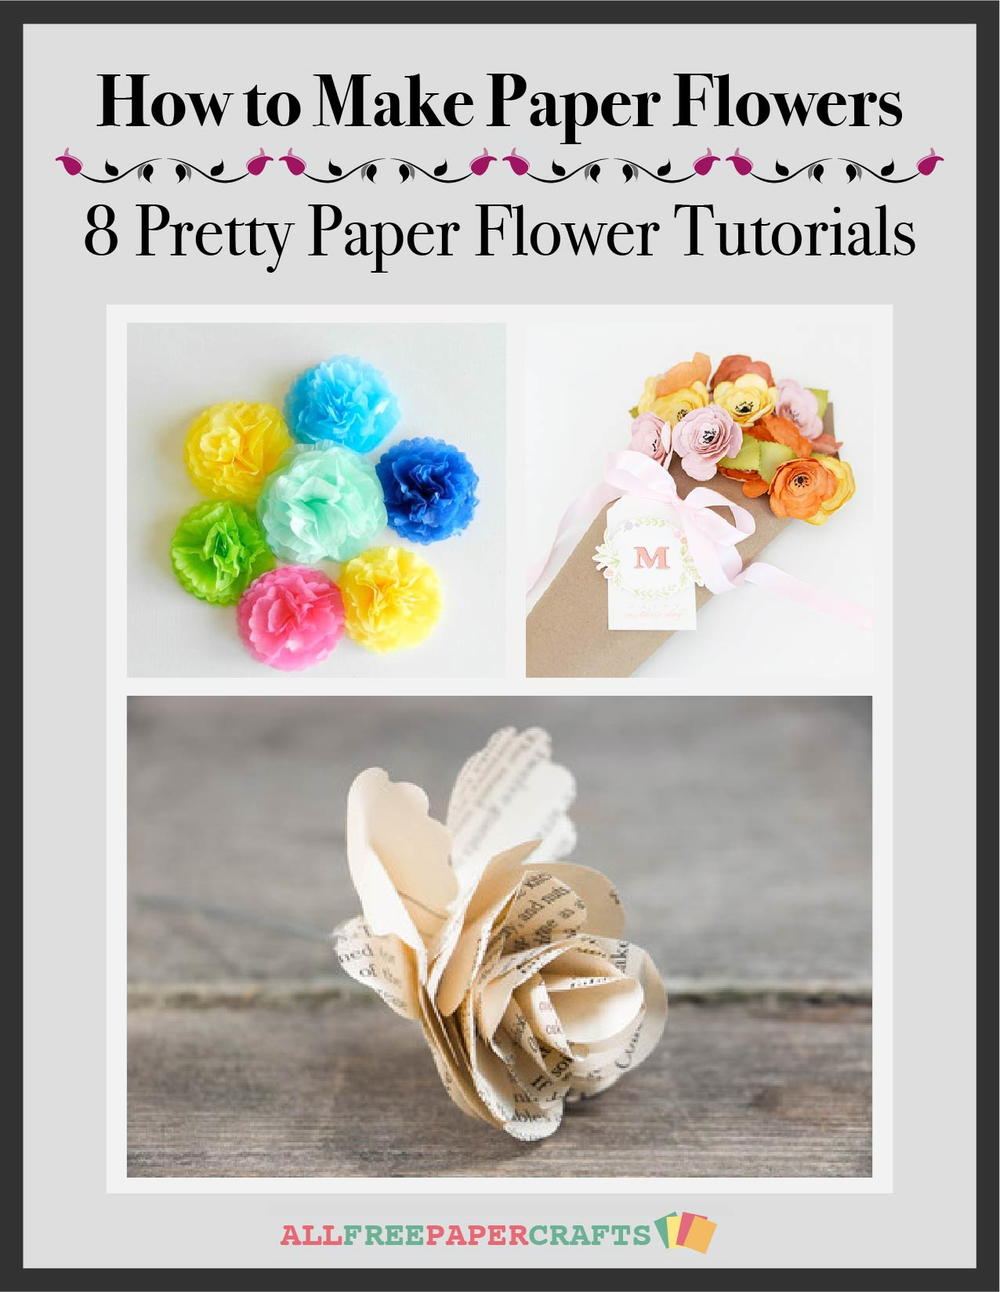 How To Make Paper Flowers 8 Pretty Paper Flower Tutorials Free